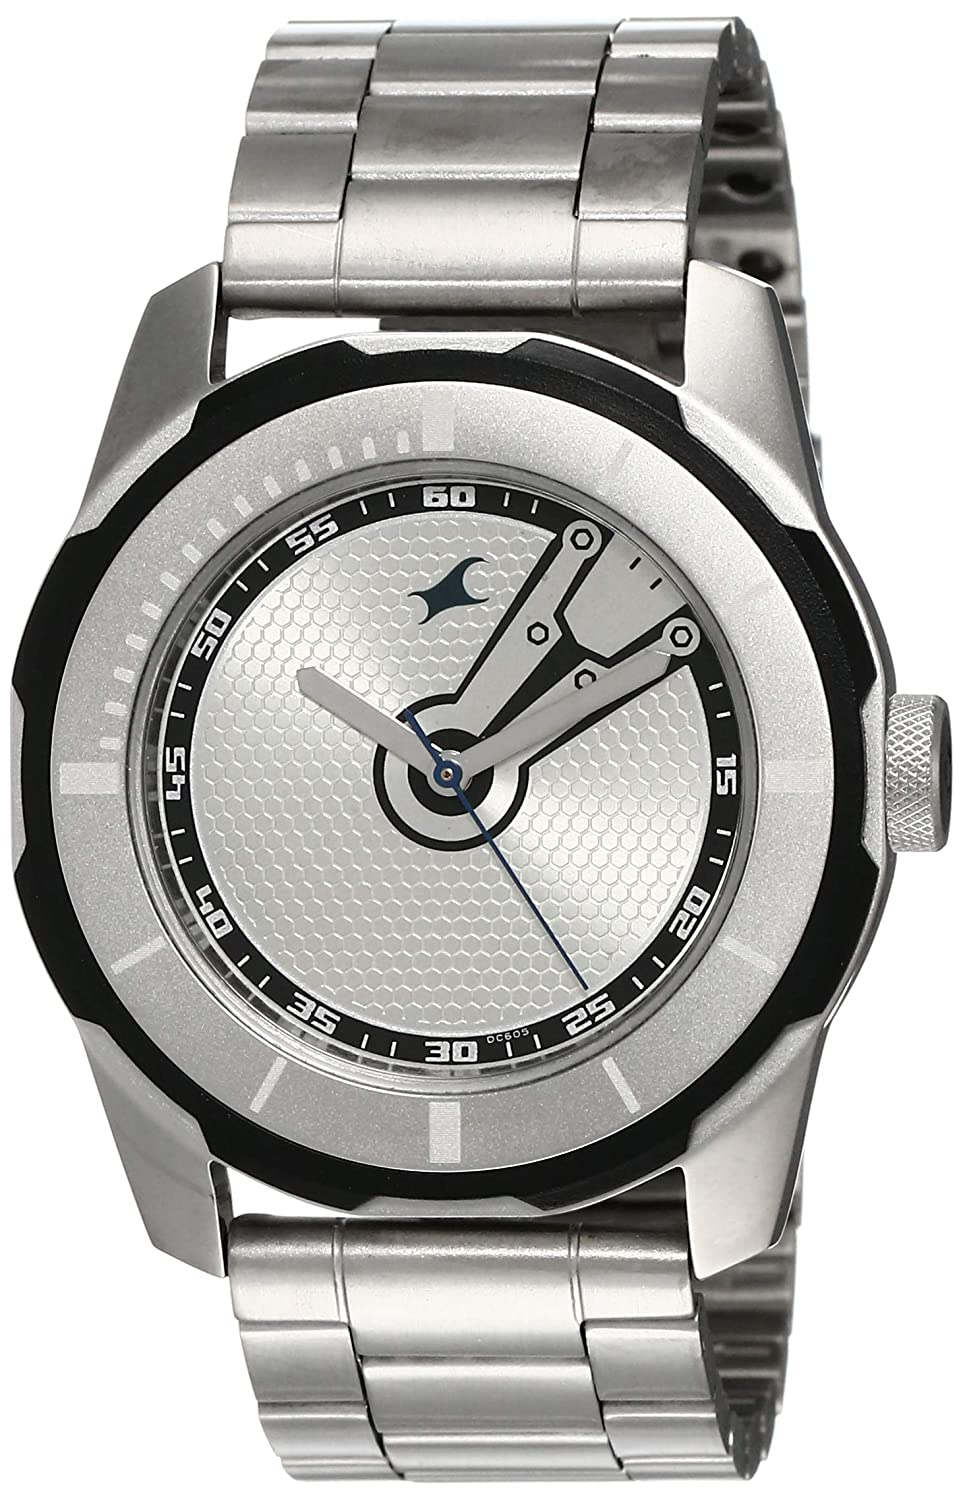 Fastrack silver chain Watches for mens in the budget of around 3000